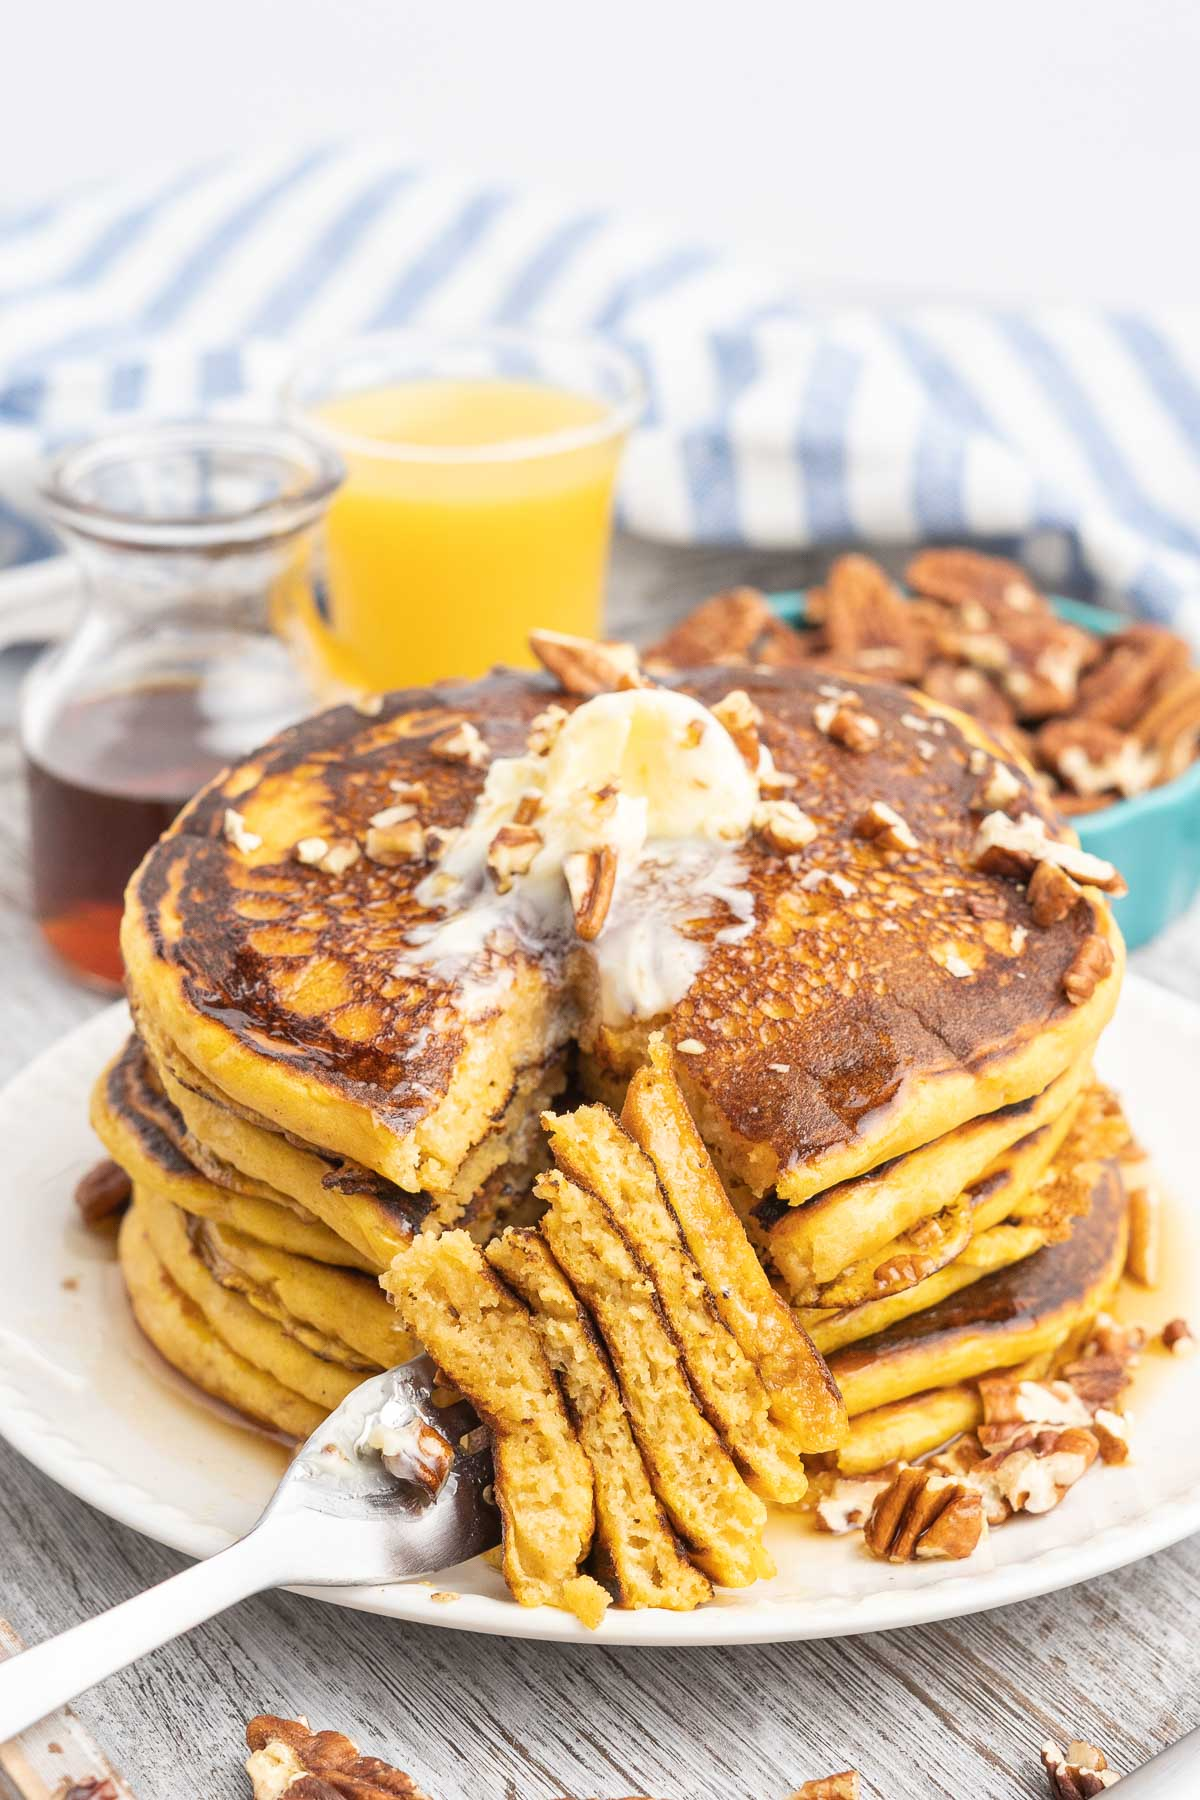 Pancakes served with a glass of orange juice and maple syrup and pecans on the side.